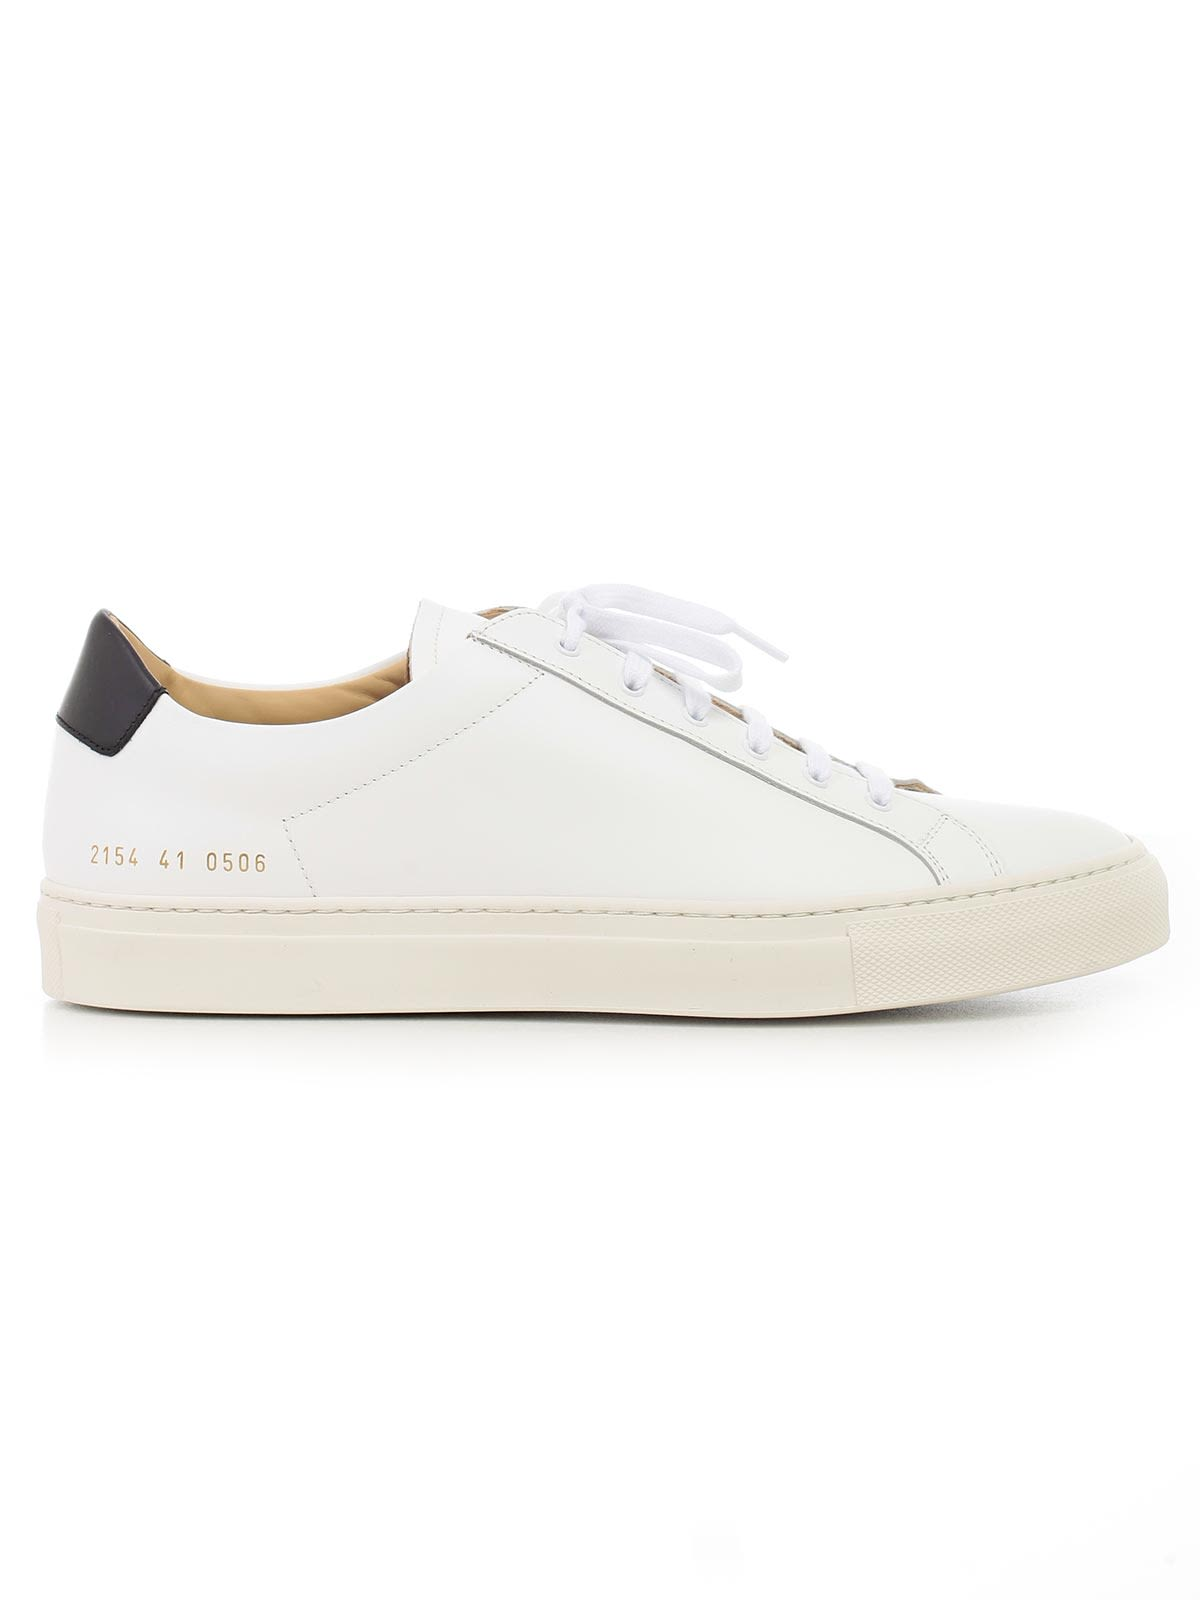 Common Projects Retro Sneakers